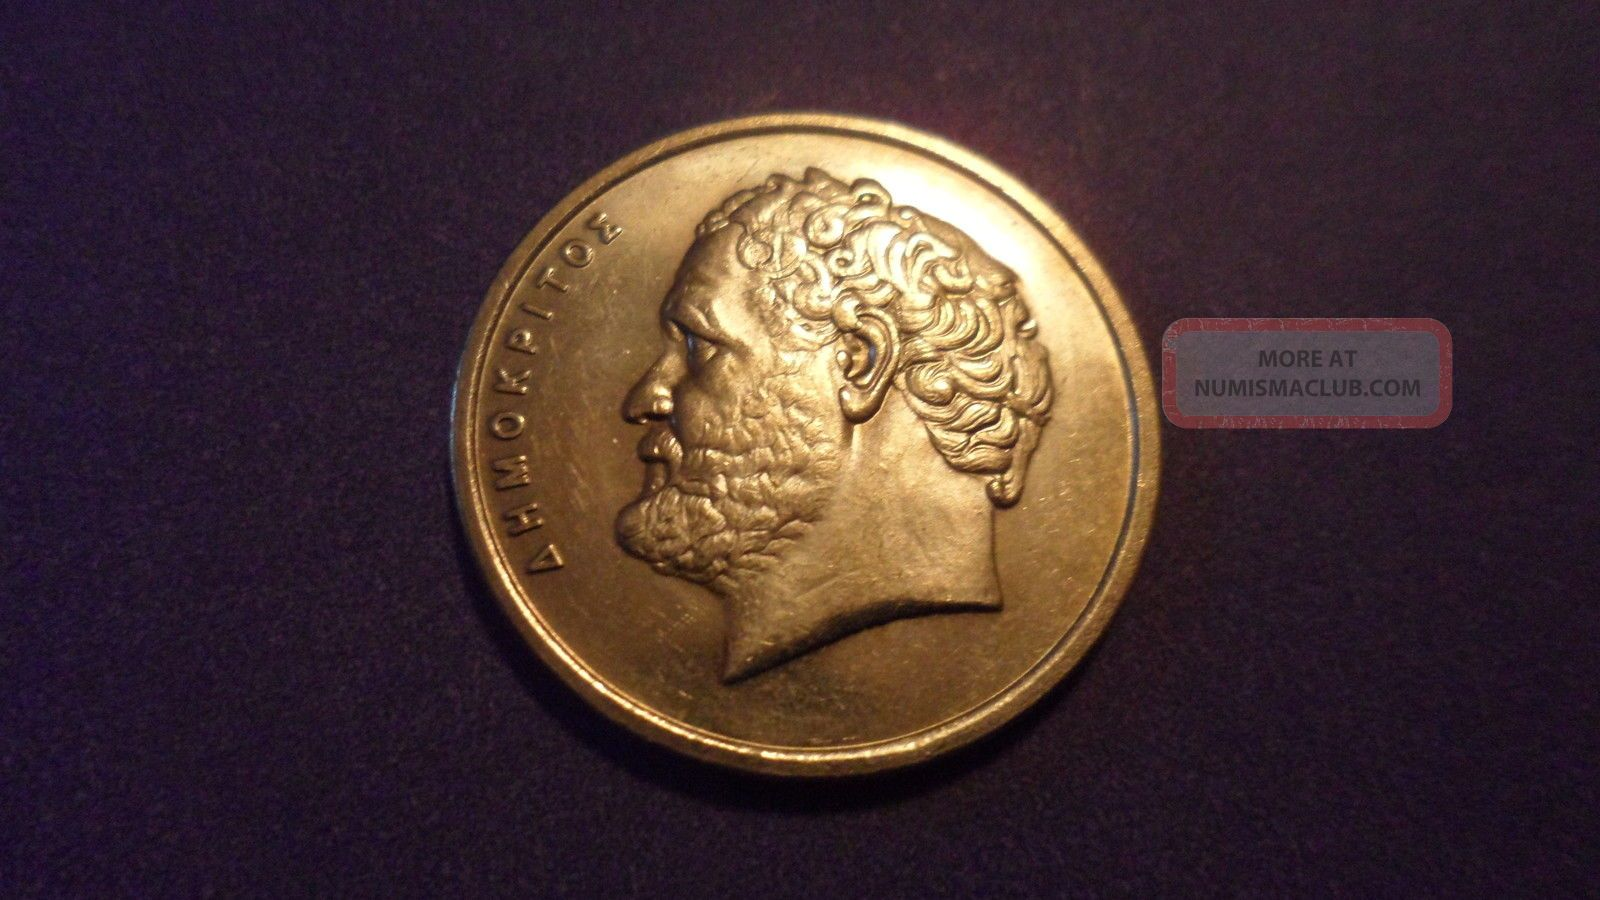 Greece 1994,  Ten Drachmes.  Nicely Detailed. Coins: World photo